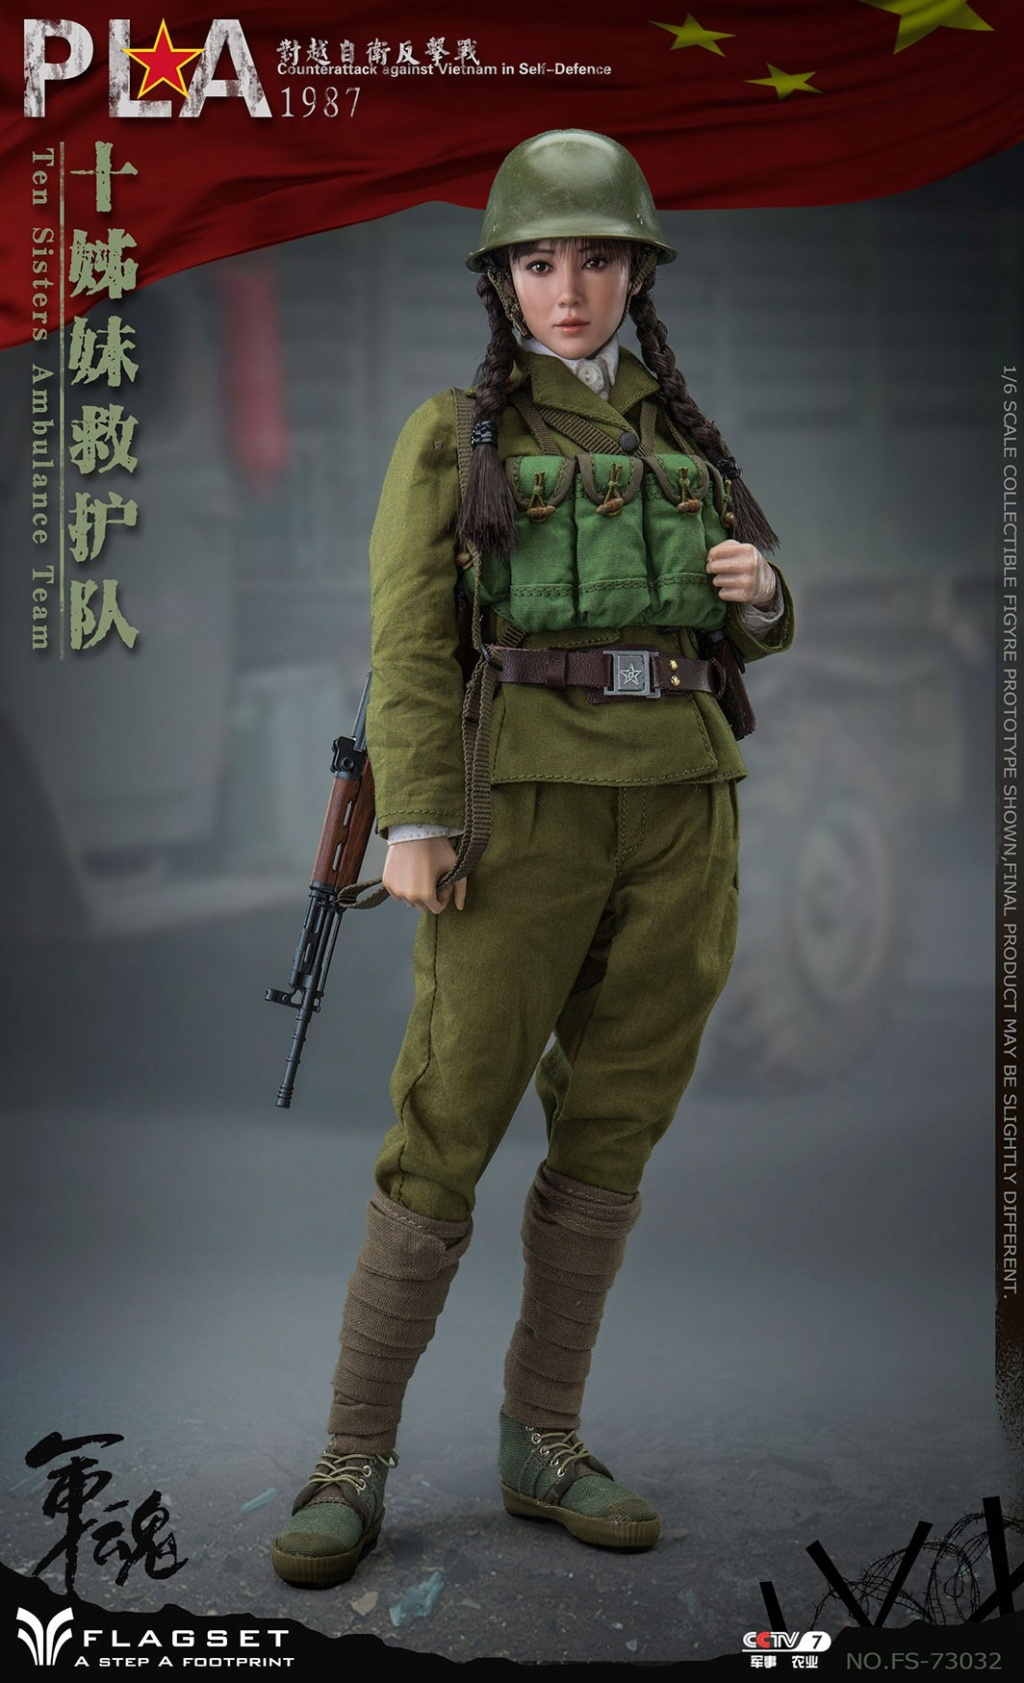 CounterAttack - NEW PRODUCT: Flagset: 1/6 counterattack against Vietnam-female soldiers of the ten sisters rescue team of the Chinese People's Liberation Army (FS73032#) 06535610